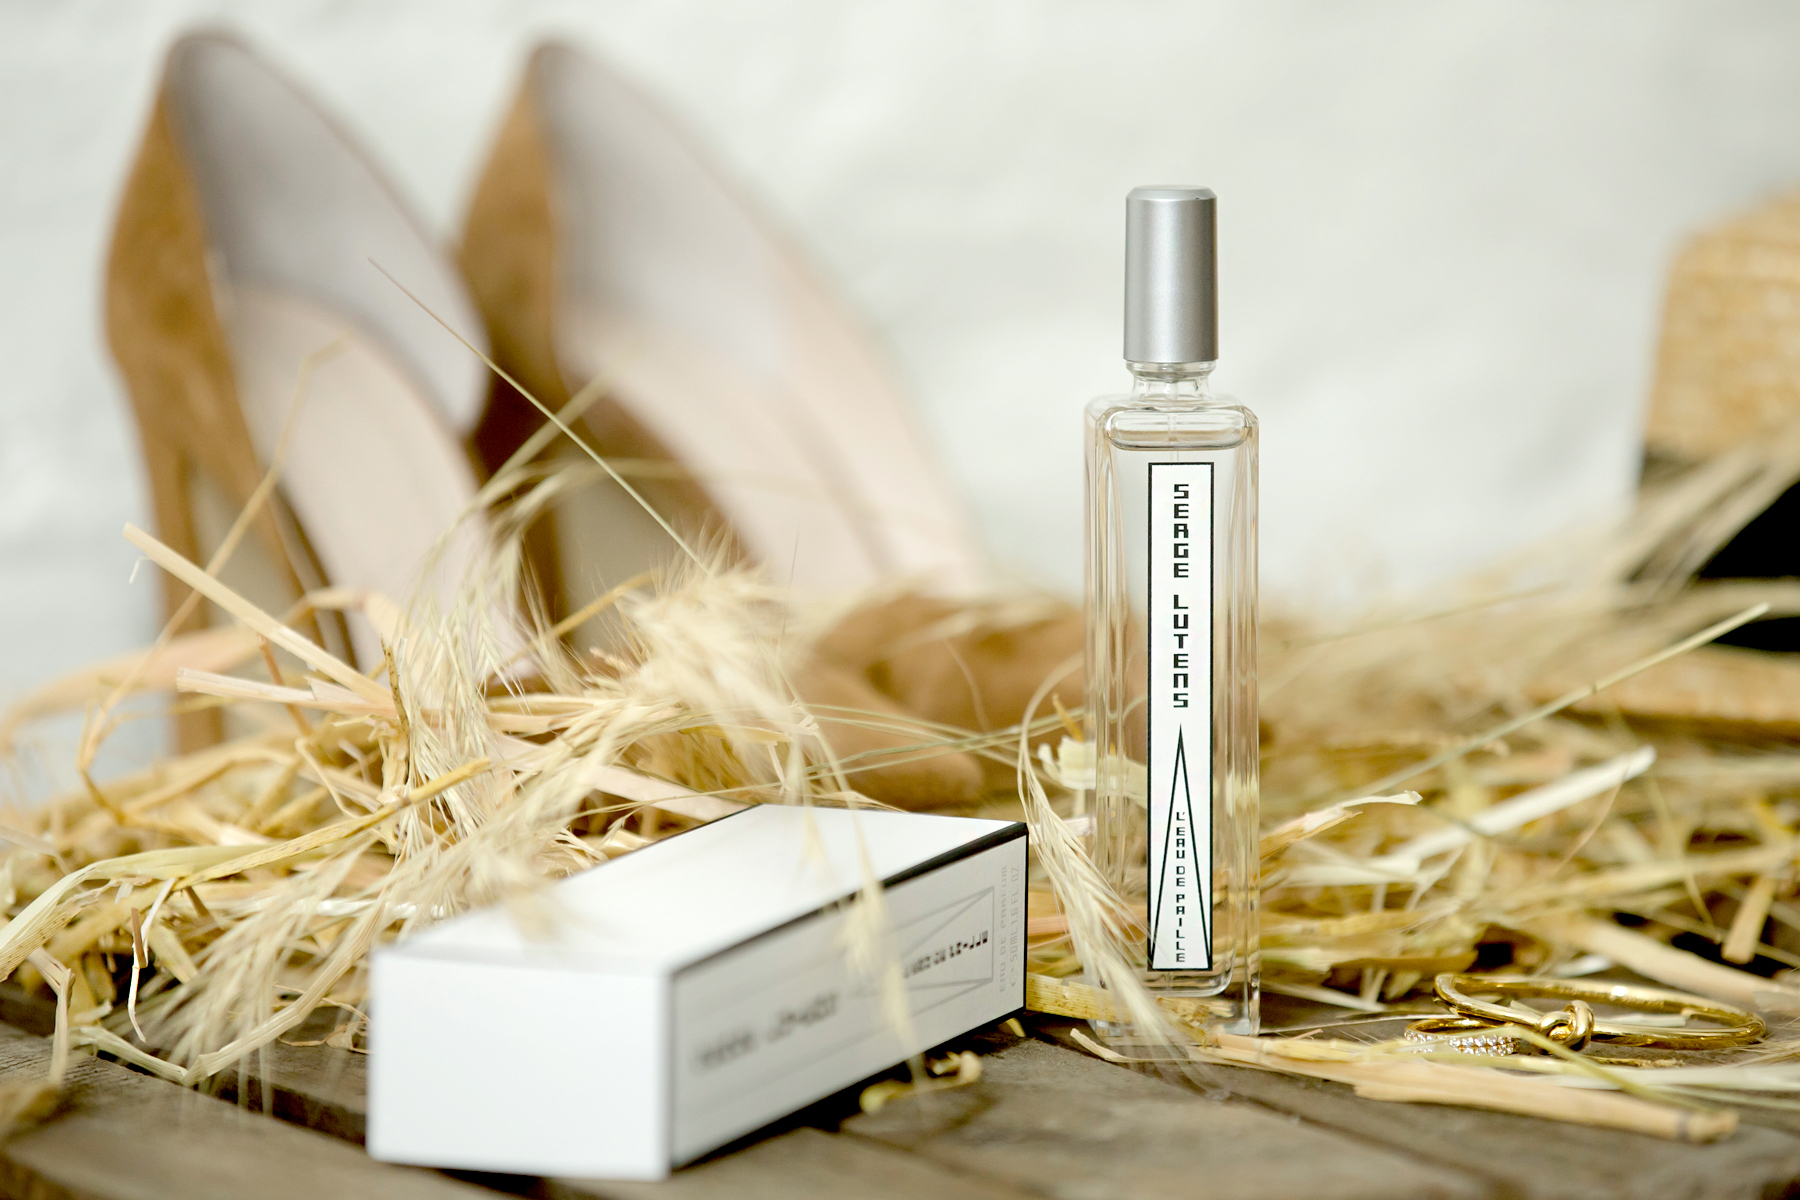 serge lutens l'eau de paille straw stroh land country cowgirl look strawhat heels jeans armerican summer sun chic yellow perfume scent love beauty beautyblogger cats & dogs fashionblog ricarda schernus modeblogger düsseldorf berlin 4